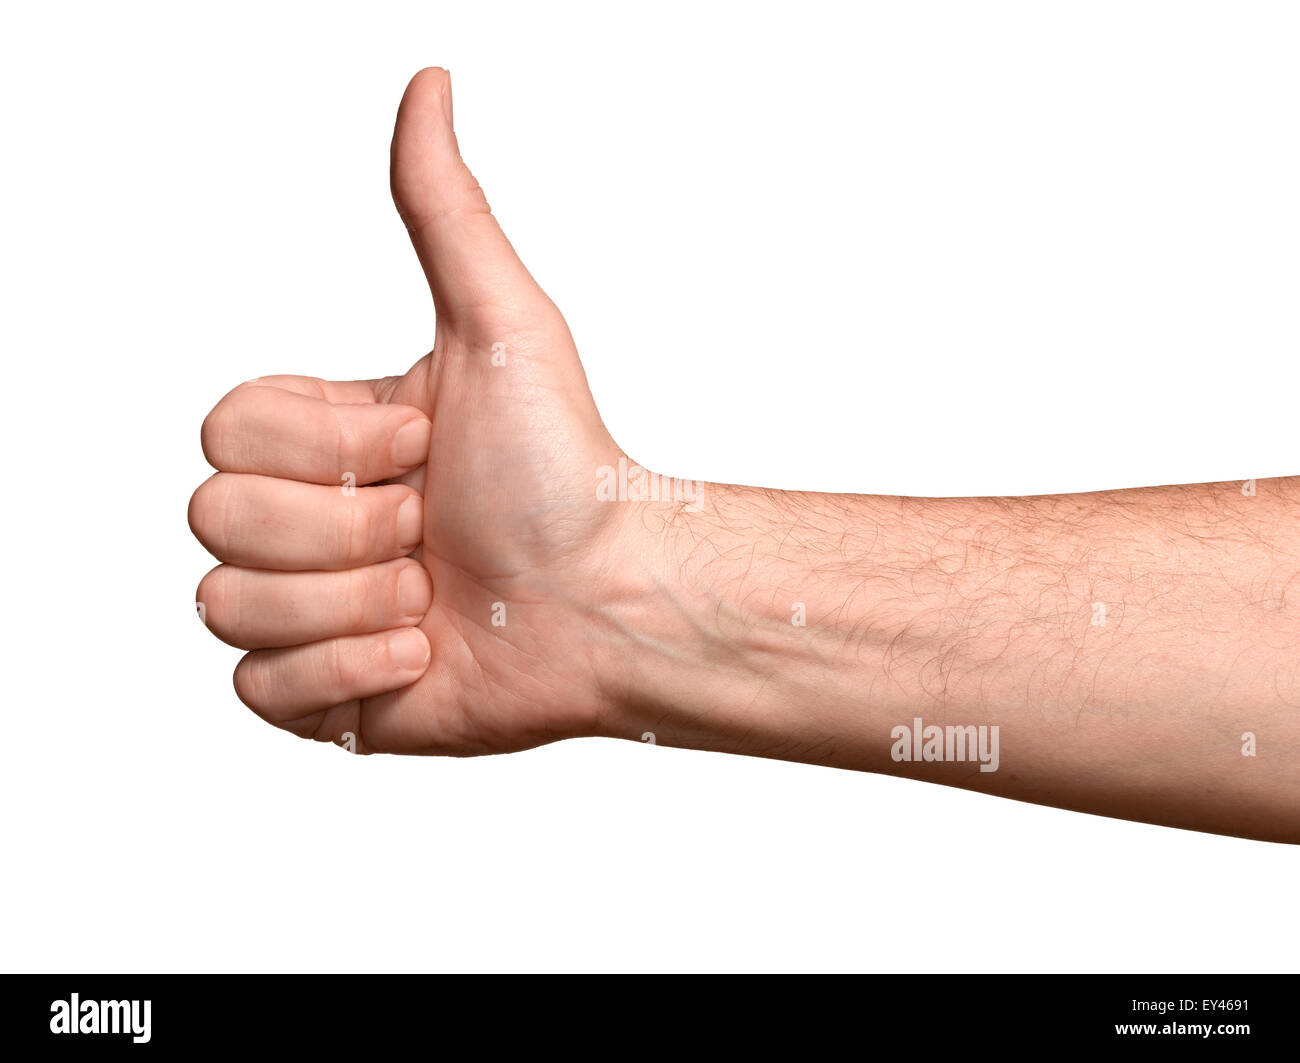 A male hand in a thumbs up position - Stock Image